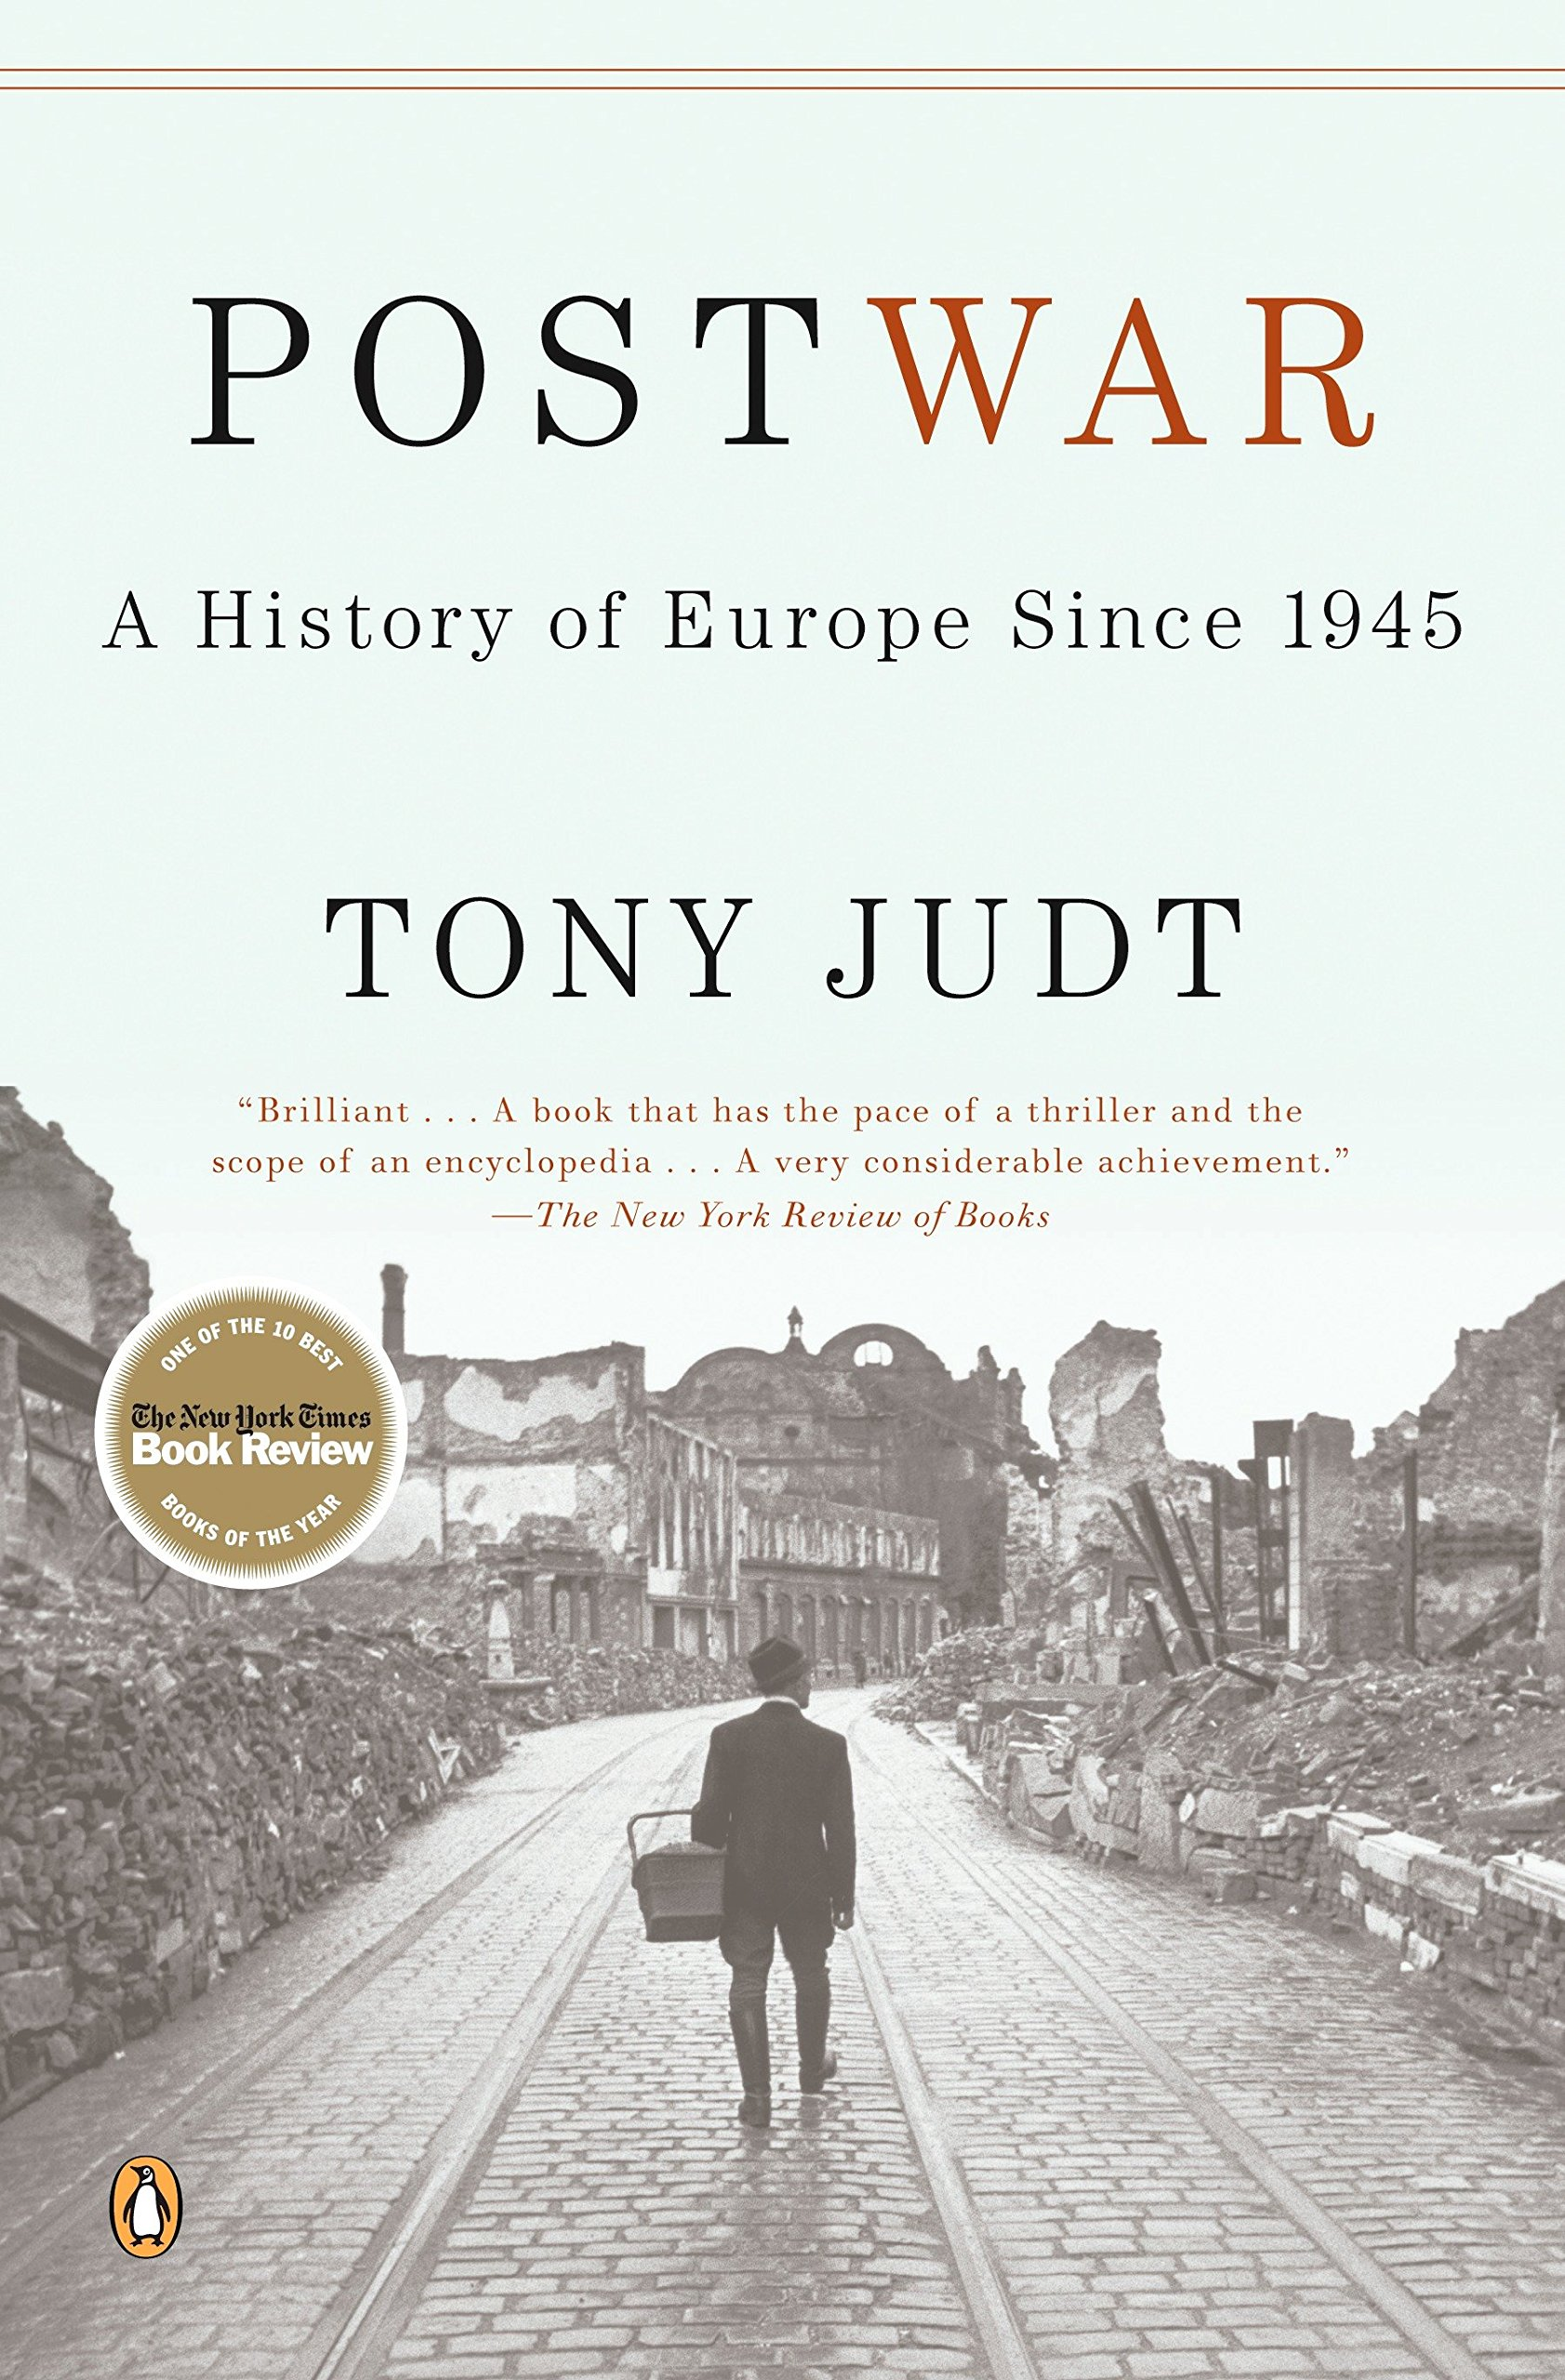 Postwar a history of europe since 1945 tony judt 8601400310151 postwar a history of europe since 1945 tony judt 8601400310151 books amazon fandeluxe Choice Image